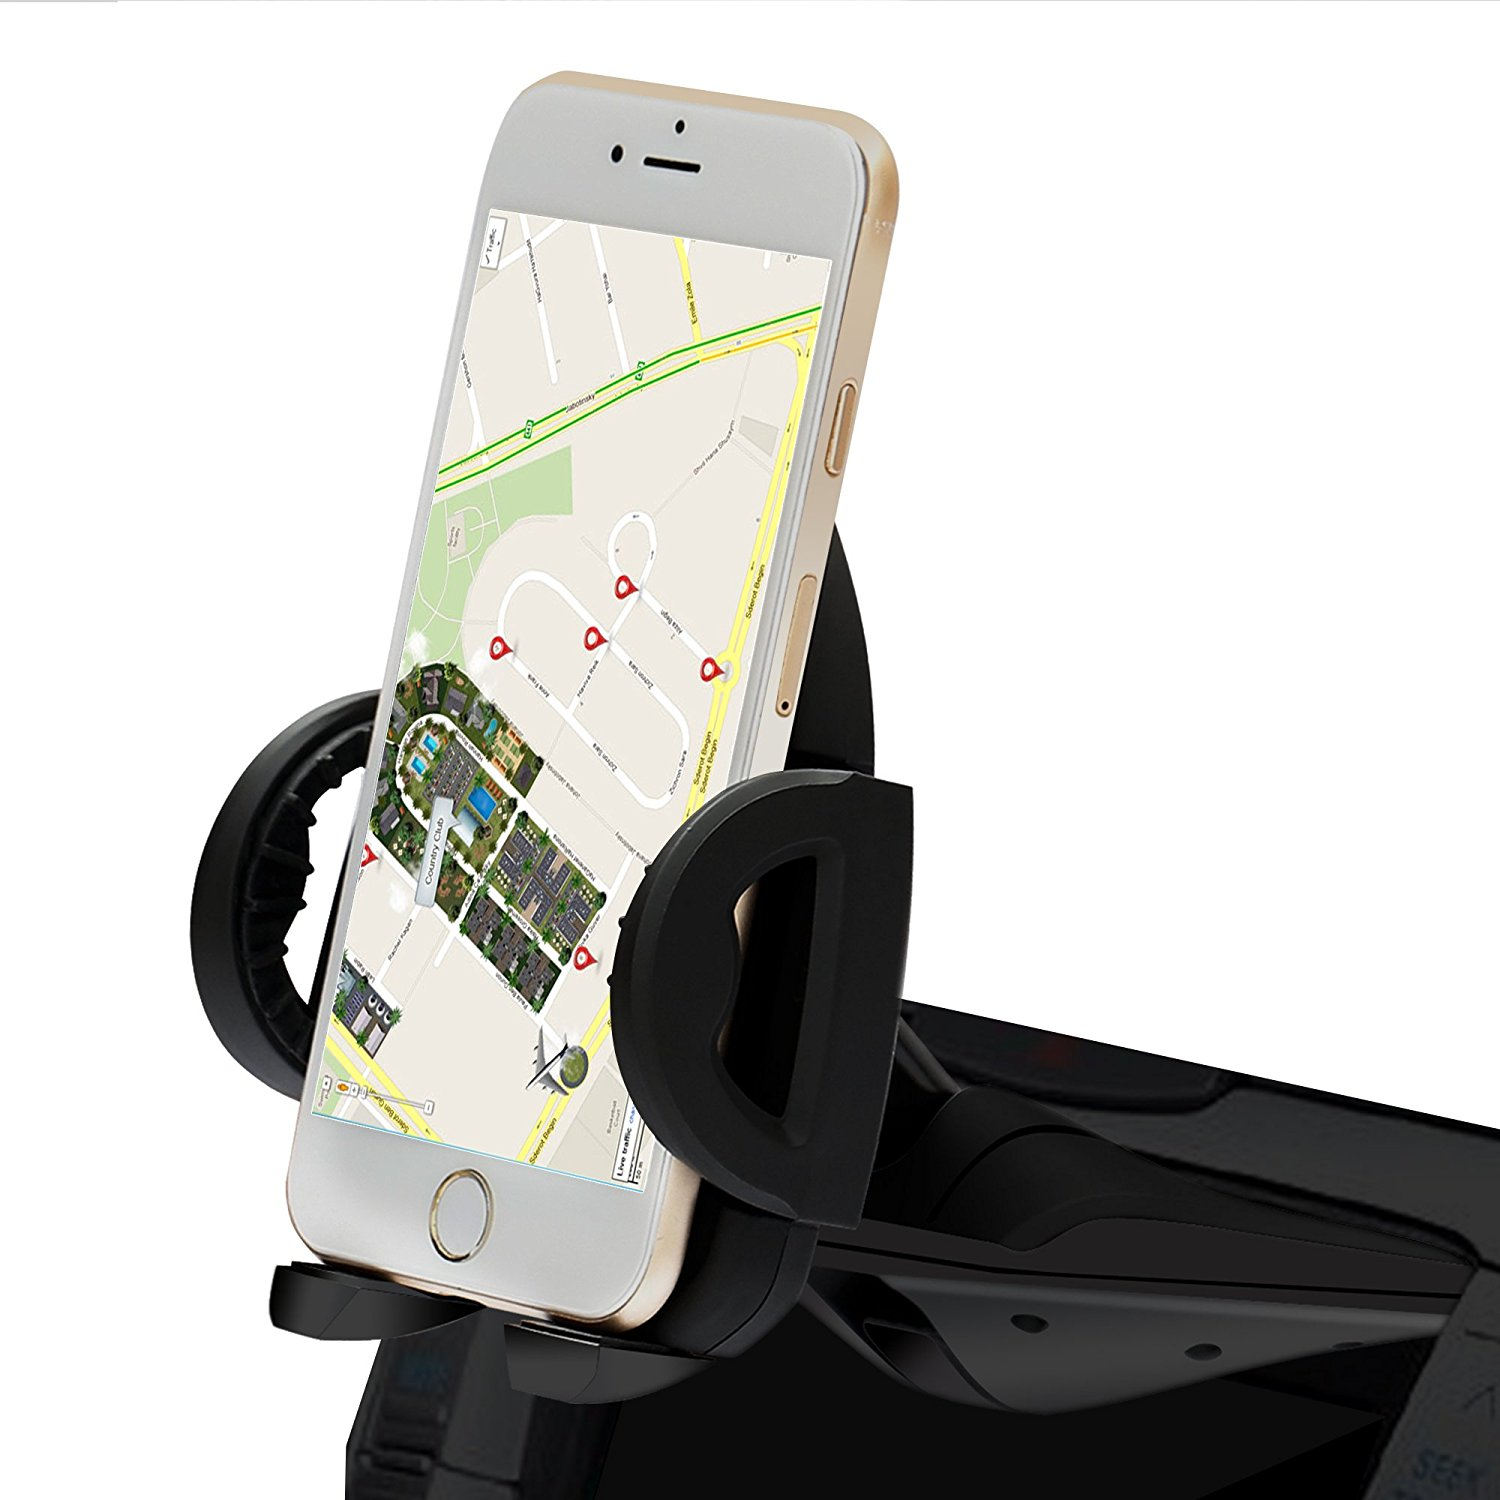 IPOW CD Slot Phone Holder Mount CD Slot Smartphone Holder Universal for iPhone XR, Xs, Xs Max, X, 8, 8 Plus, 7, 7 6, 6s, 6s, 6, SE, 5s, 5, 5c, Samsung Galaxy & Note